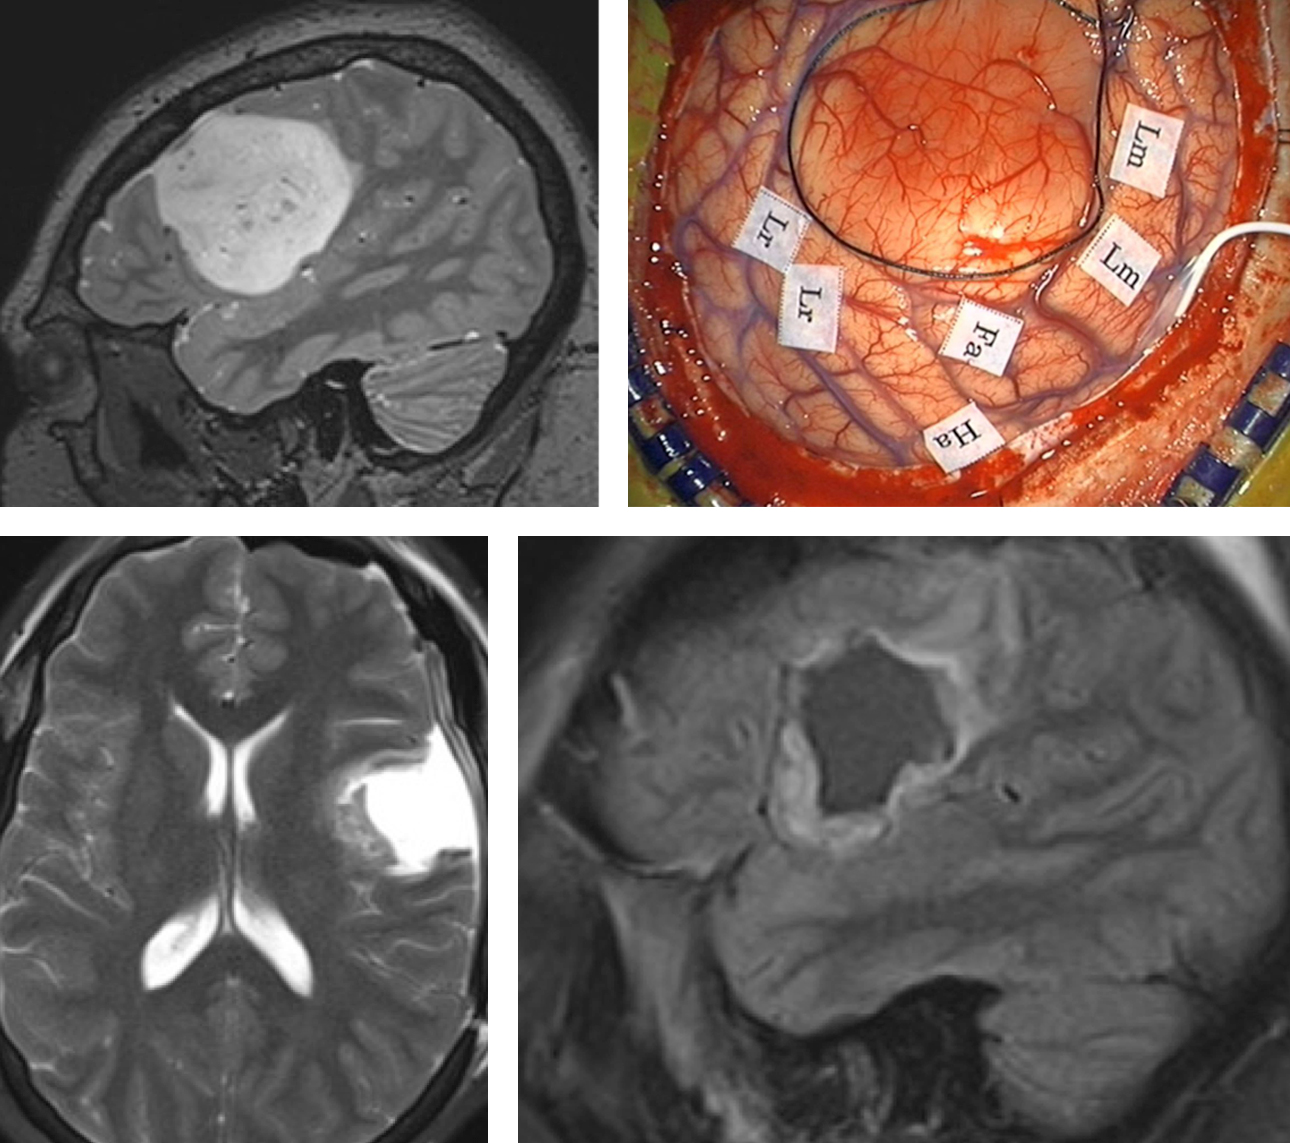 Figure 10: The preoperative MRI and intraoperative map are demonstrated (upper row). Localization of the motor speech (Lm), receptive language (Lr), Face (Fa) and hand (Ha) areas allows safe and aggressive resection of the tumor. The boundaries of the tumor are marked with a black suture. Subcortical mapping may be used at the depth of the tumor. I increase the cortical stimulation parameters by 1-2 mA to conduct subcortical mapping.  During resection within close vicinity of vital cortices and tracts, frequent intraoperative exams are performed to assess the status of the patient. This immediate feedback is important to the surgeon and encourages further resection as guided by stimulation mapping data.  Postoperative imaging demonstrates a reasonable resection of the mass (lower row). This patient did not suffer from the any deficit.